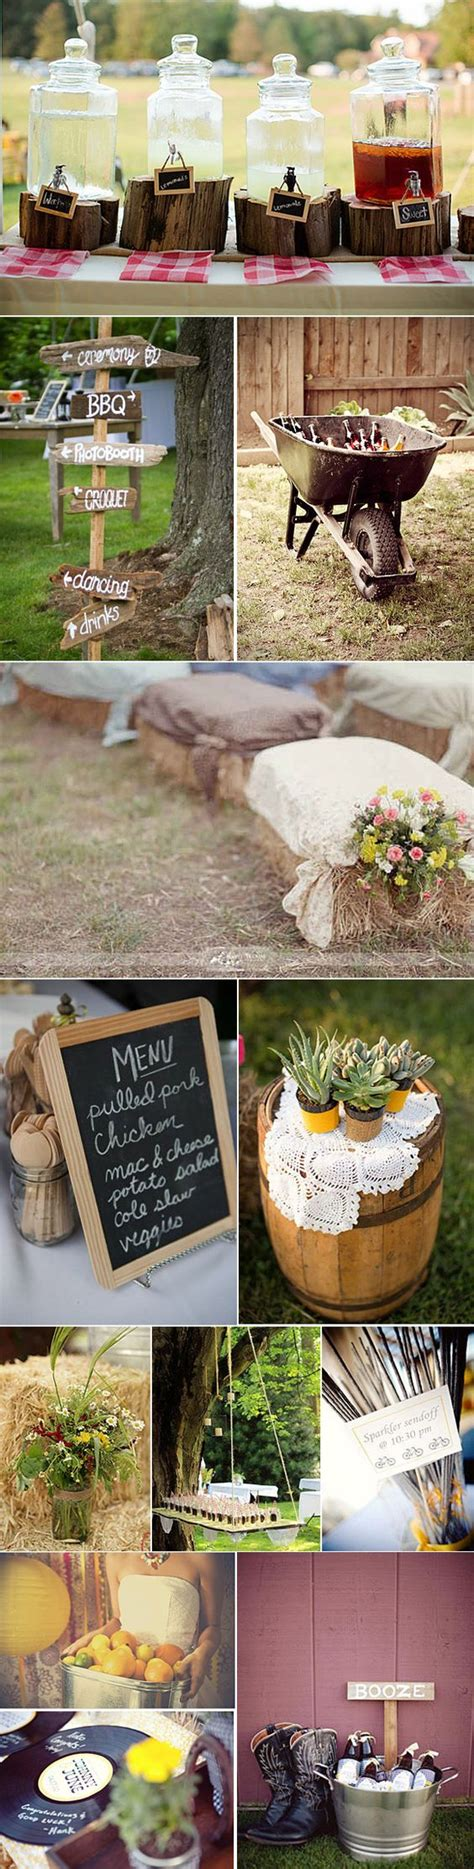 backyard bbq wedding ideas 100 gorgeous country rustic wedding ideas details hi